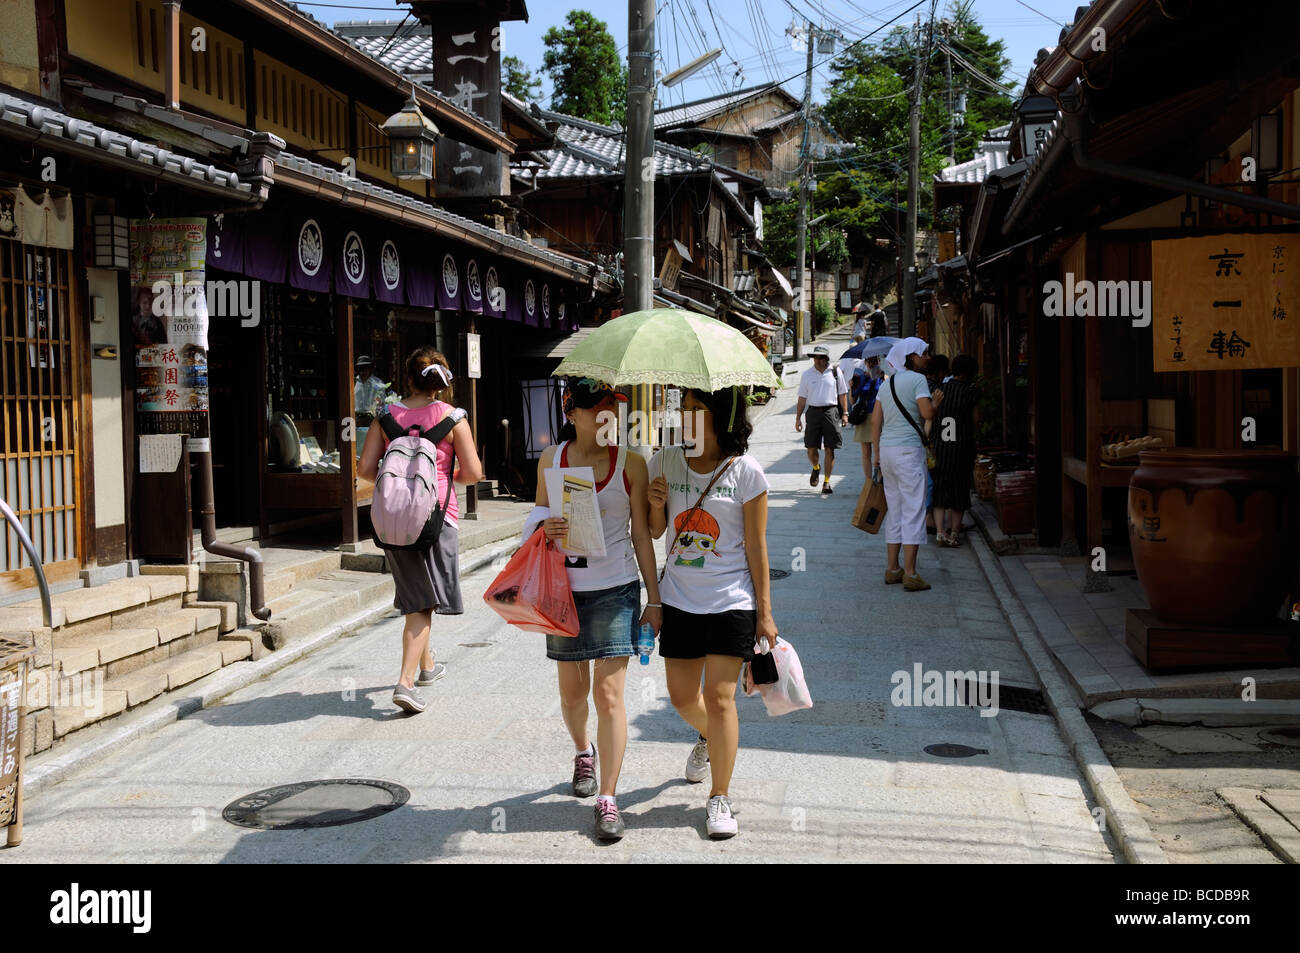 Kyoto Japan Japanese tourists with a umbrella walking in the street - Stock Image